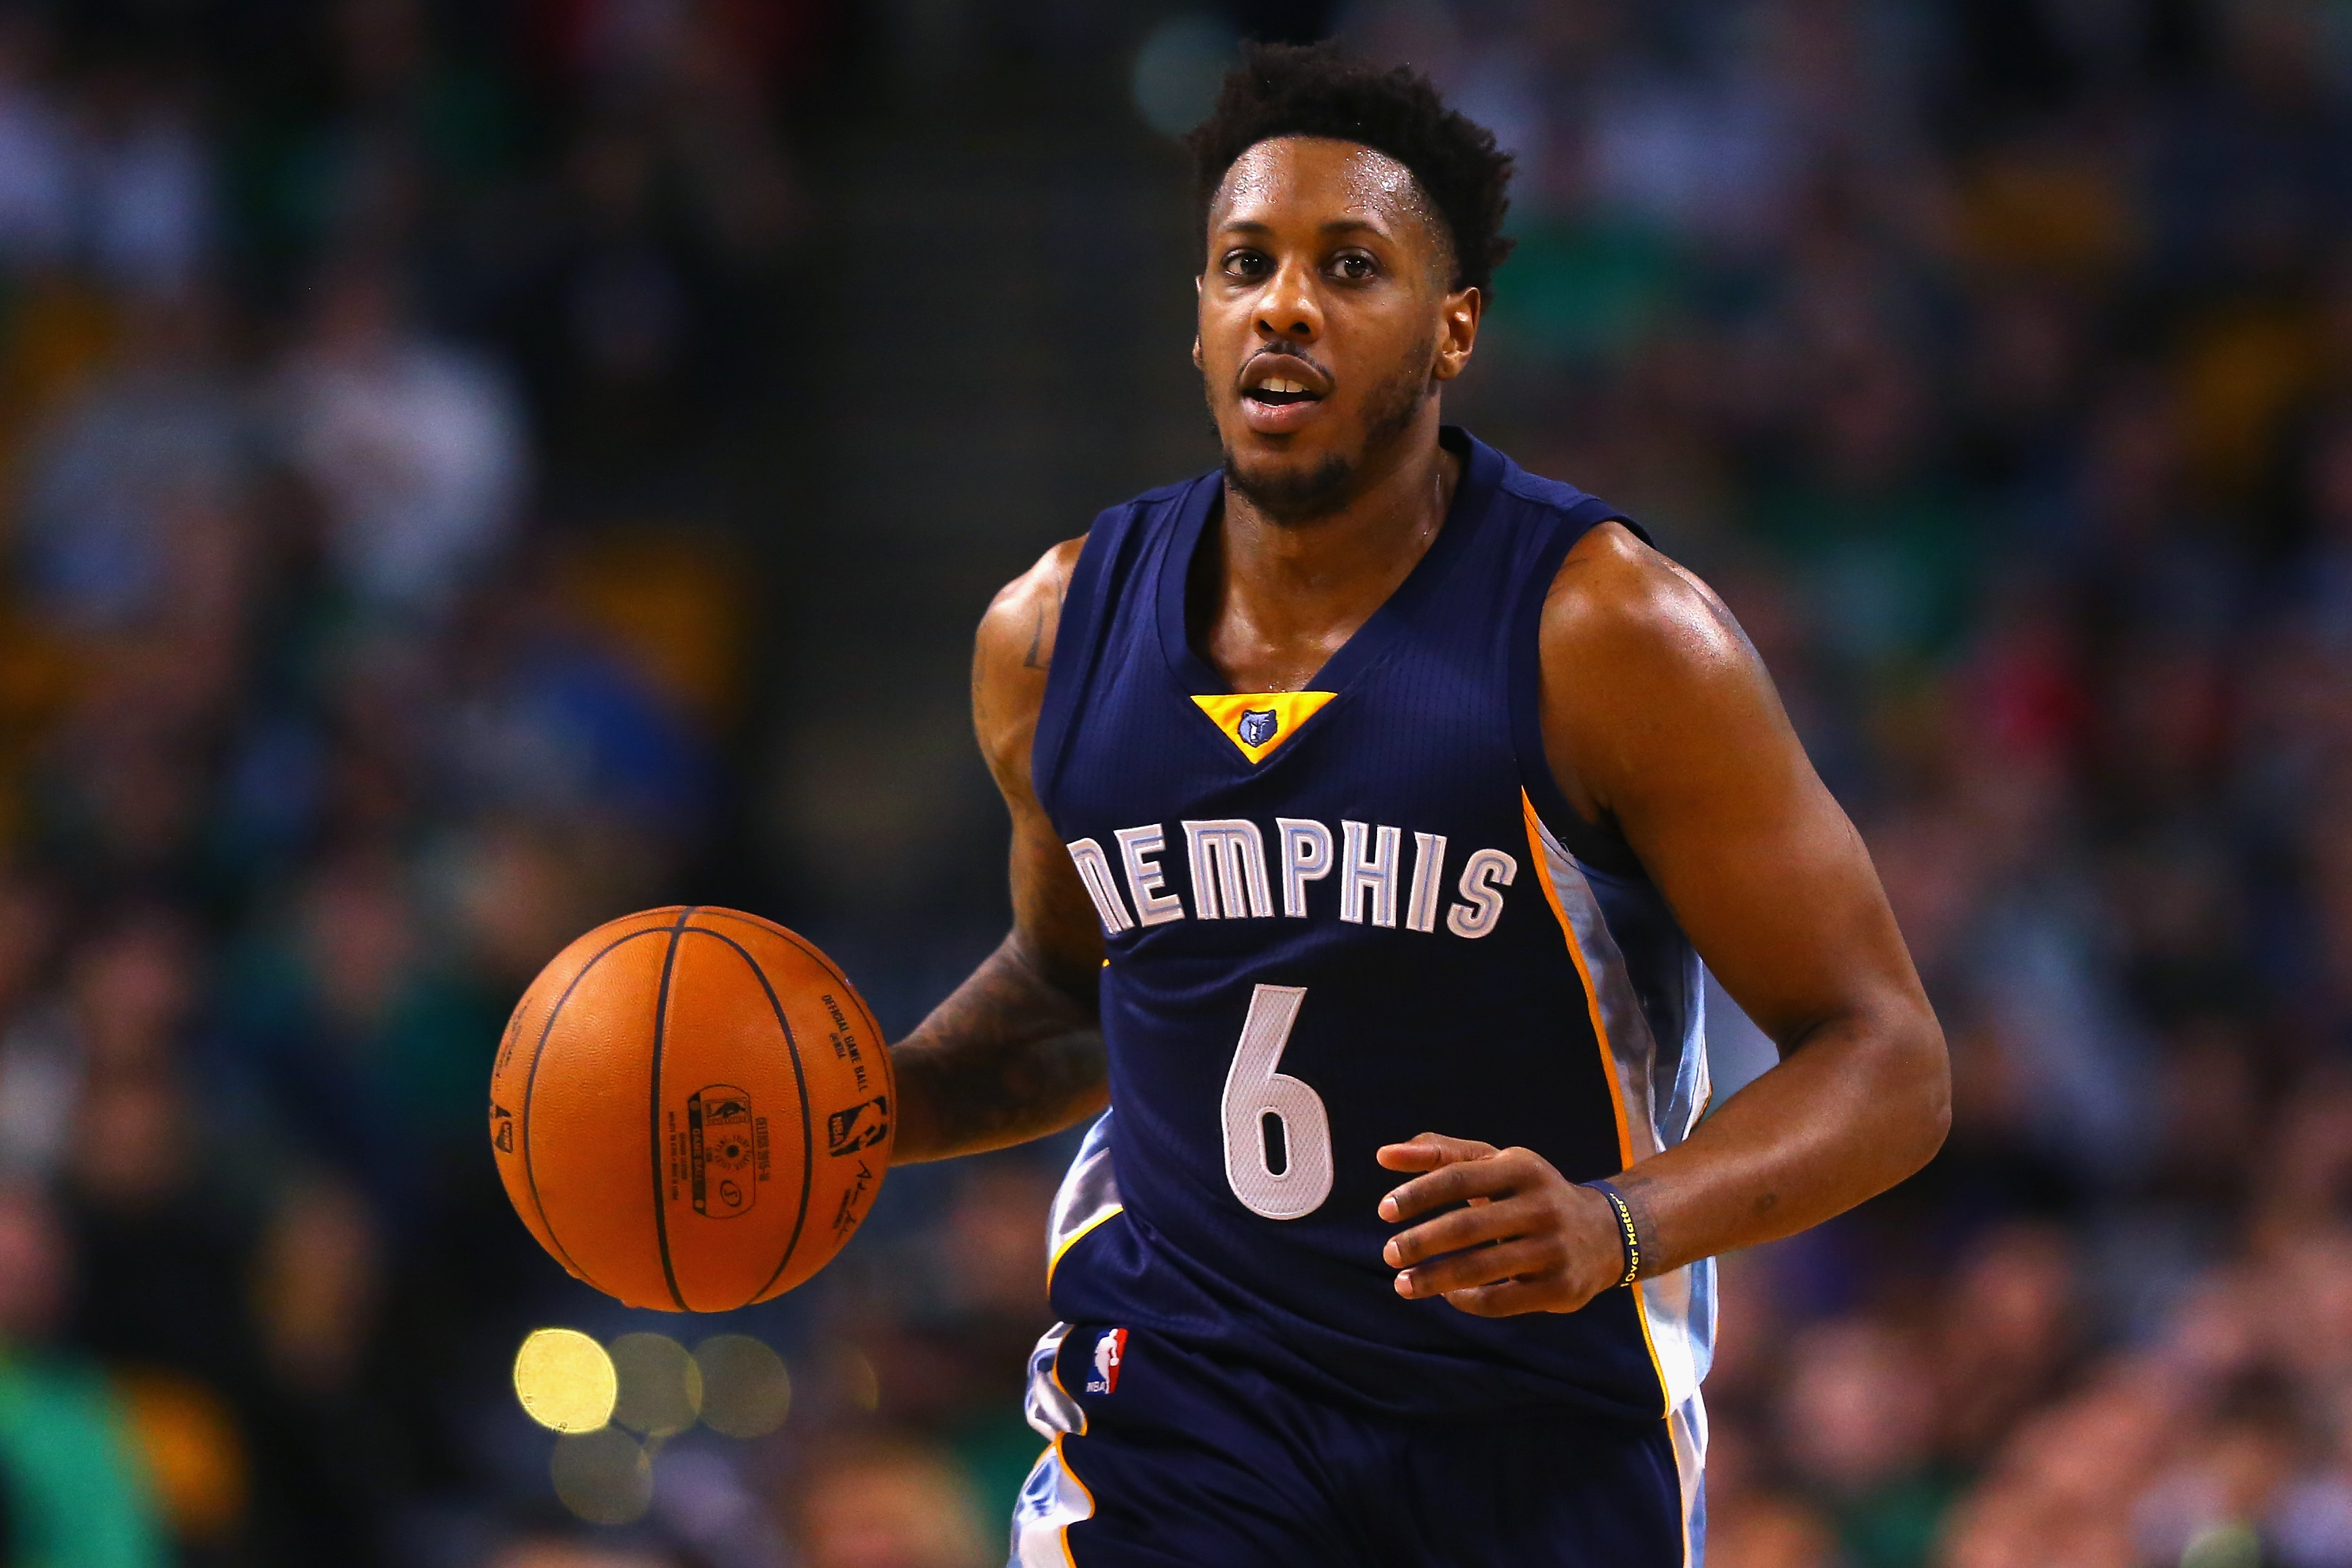 BOSTON, MA - MARCH 09:  Mario Chalmers #6 of the Memphis Grizzlies dribbles against the Boston Celtics  during the second quarter at TD Garden on March 9, 2016 in Boston, Massachusetts.NOTE TO USER: User expressly acknowledges and agrees that, by downloading and/or using this photograph, user is consenting to the terms and conditions of the Getty Images License Agreement.  (Photo by Maddie Meyer/Getty Images)